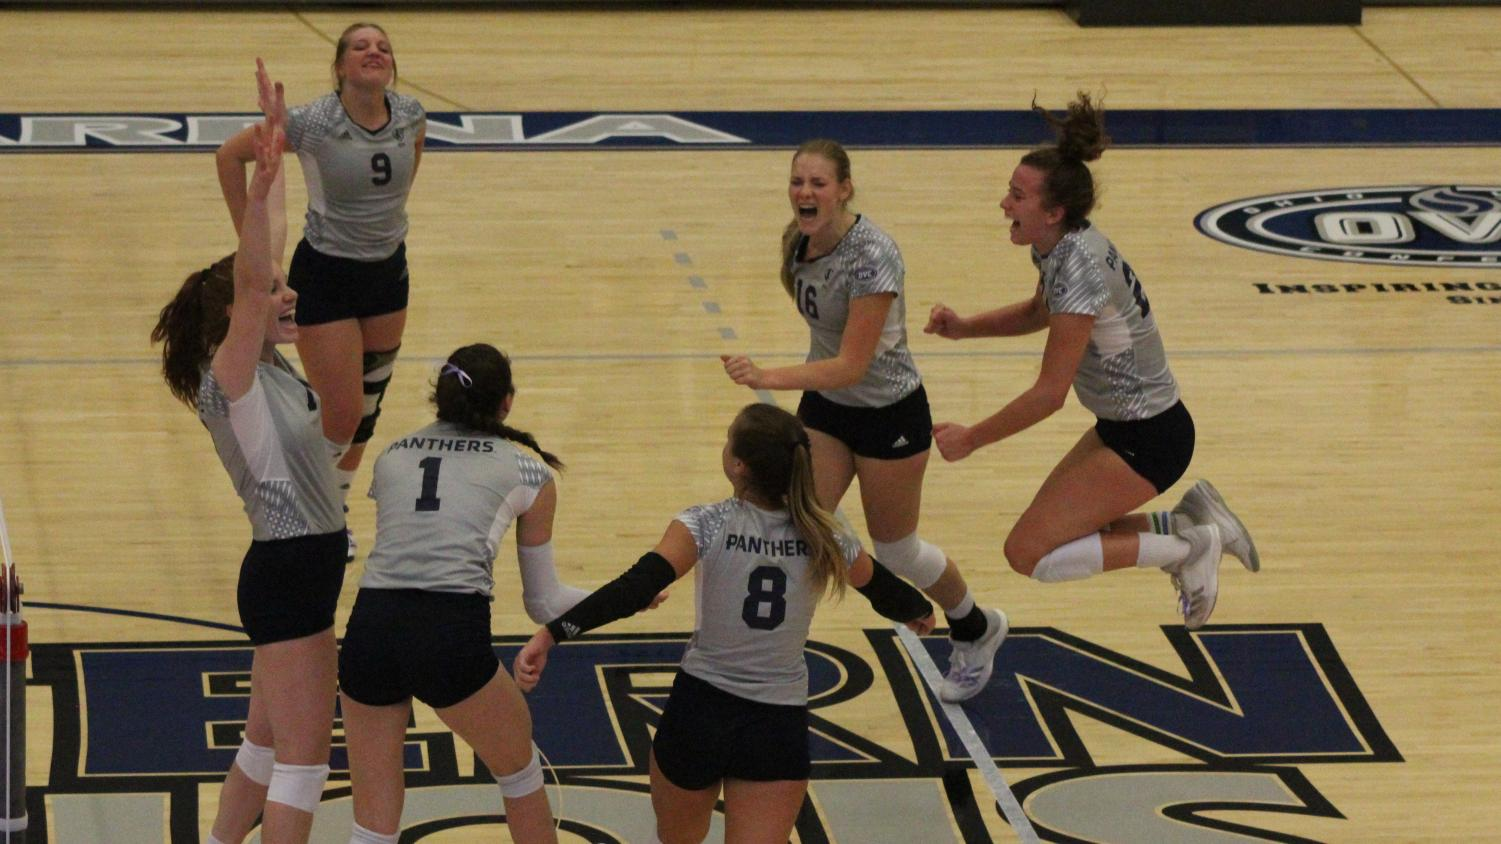 The Eastern volleyball team celebrates a 39-37 win in the first set against Tennessee Tech on Oct. 18. The Panthers won the match in five sets, earning their first conference win of the season.